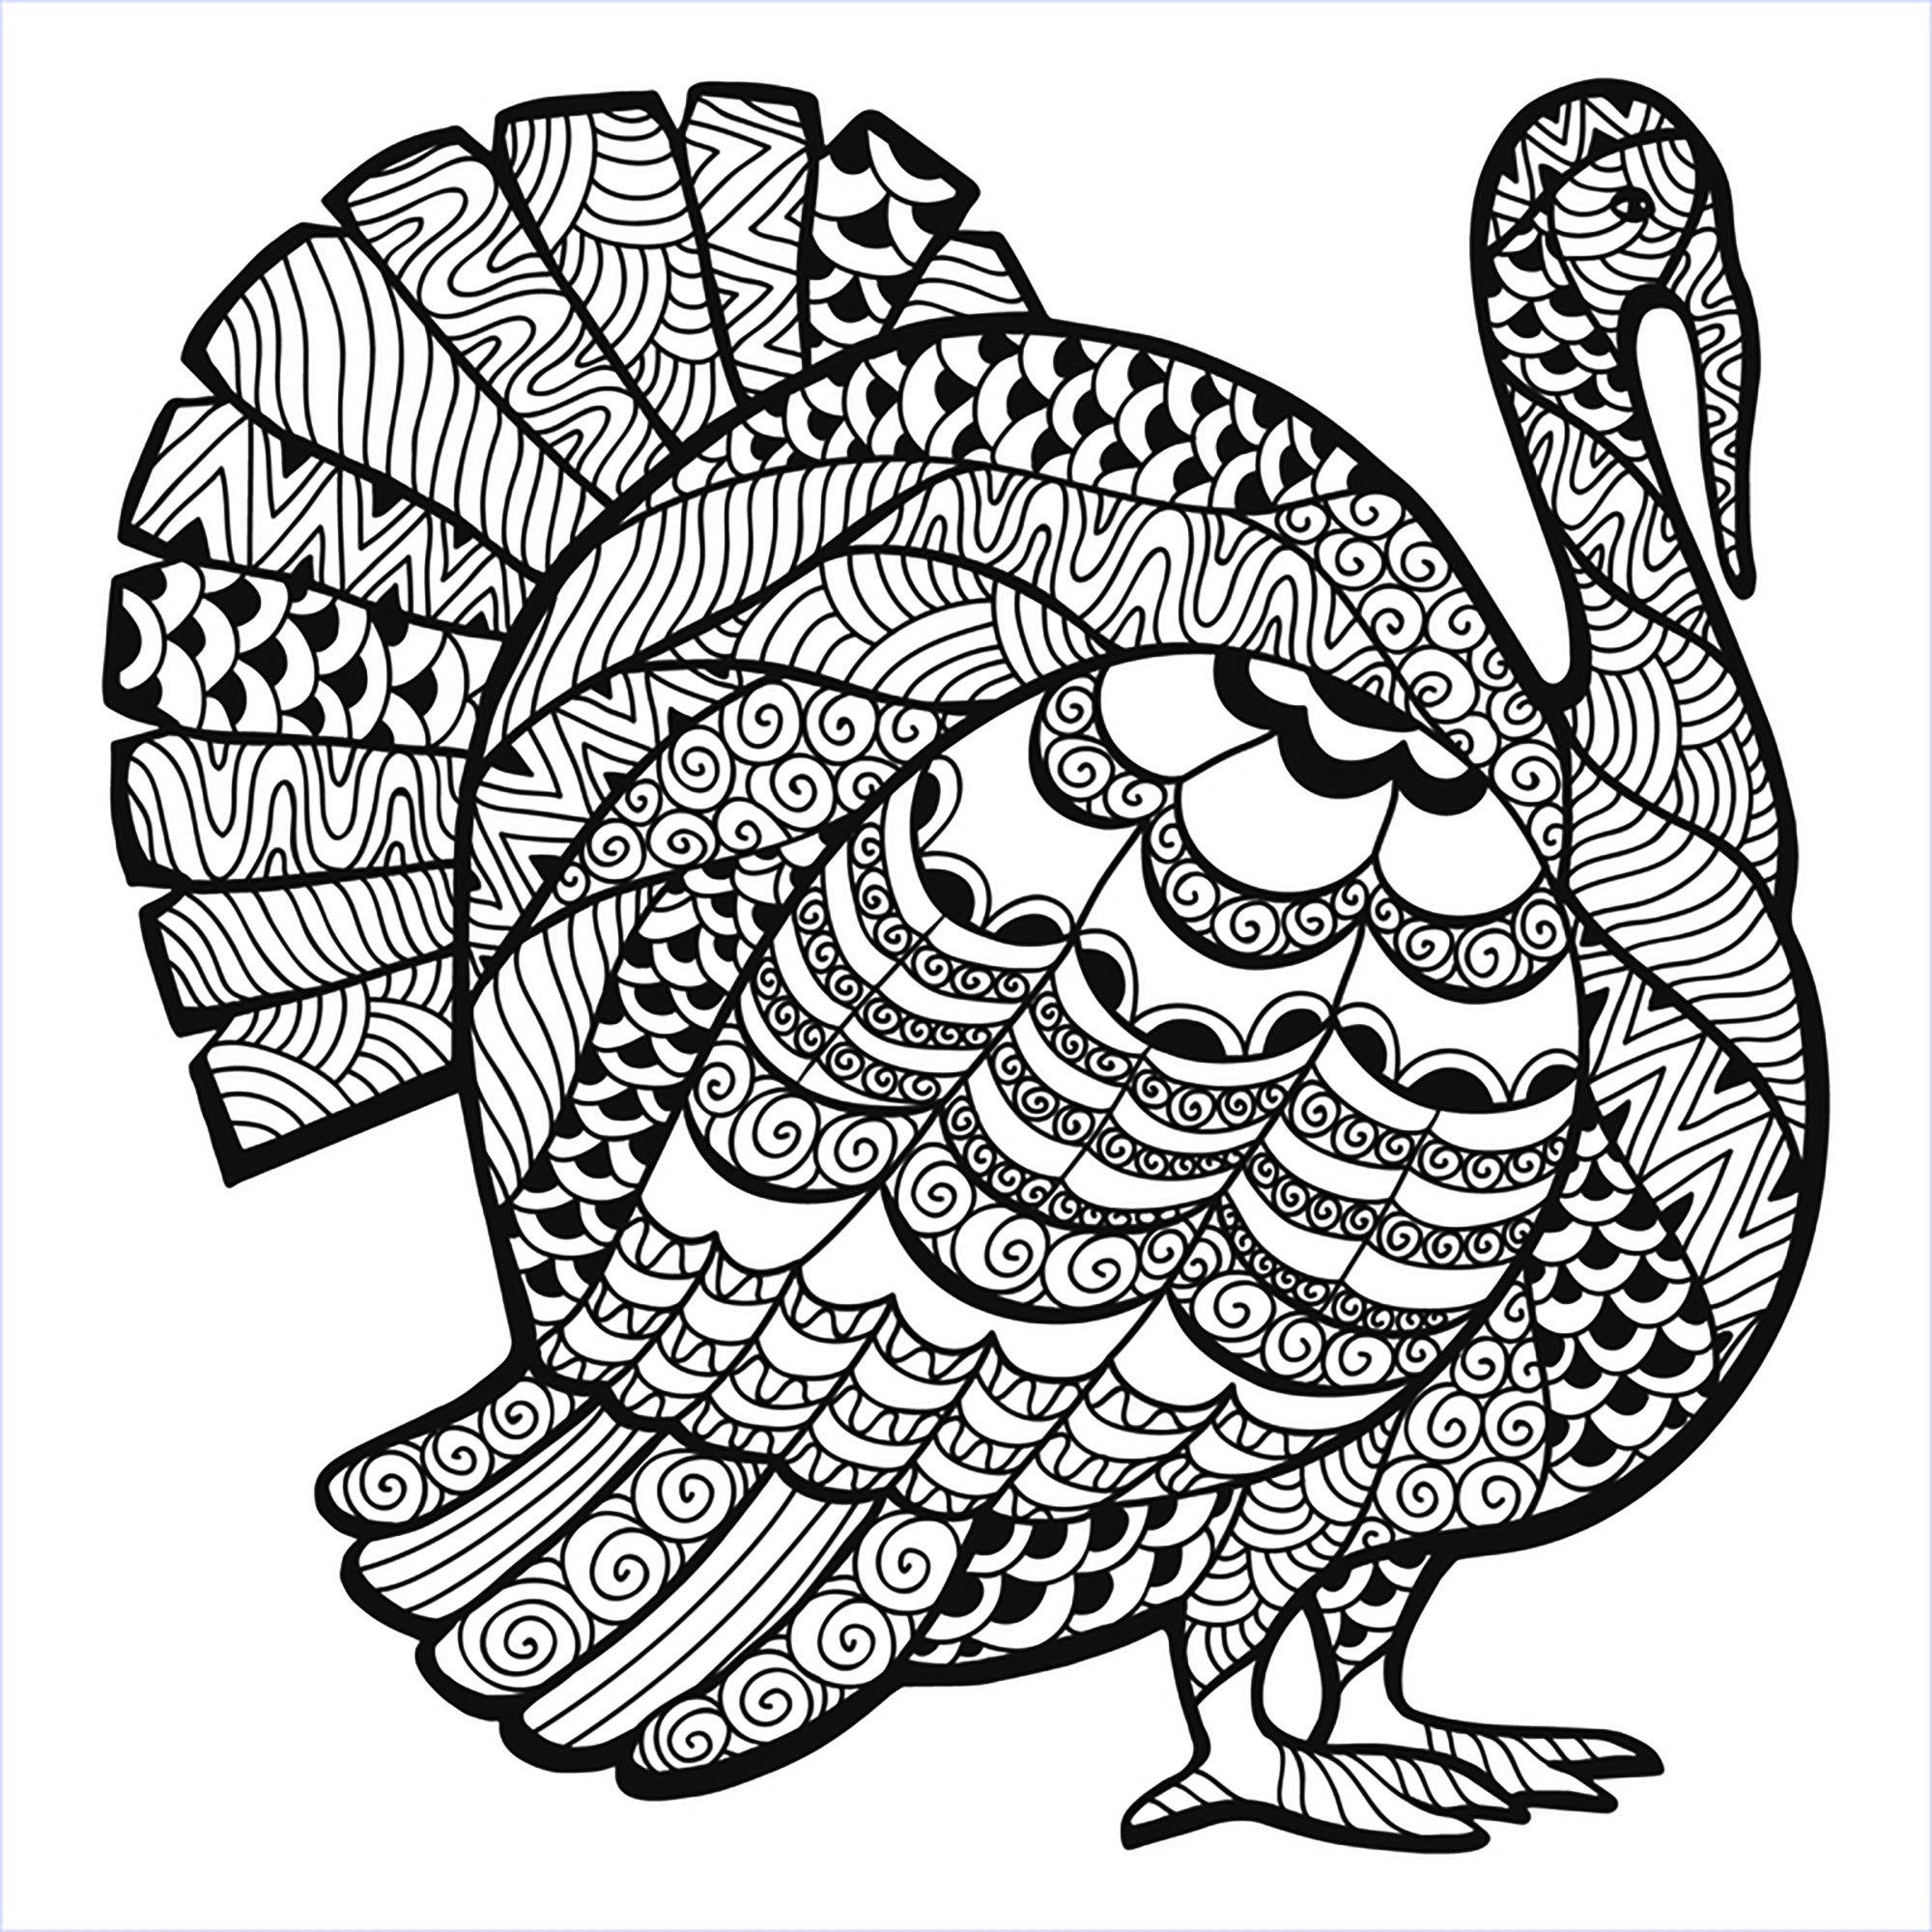 Thanksgiving Turkey Coloring Pages Thanksgiving Zentangle Turkeyelena Medvedeva  Thanksgiving